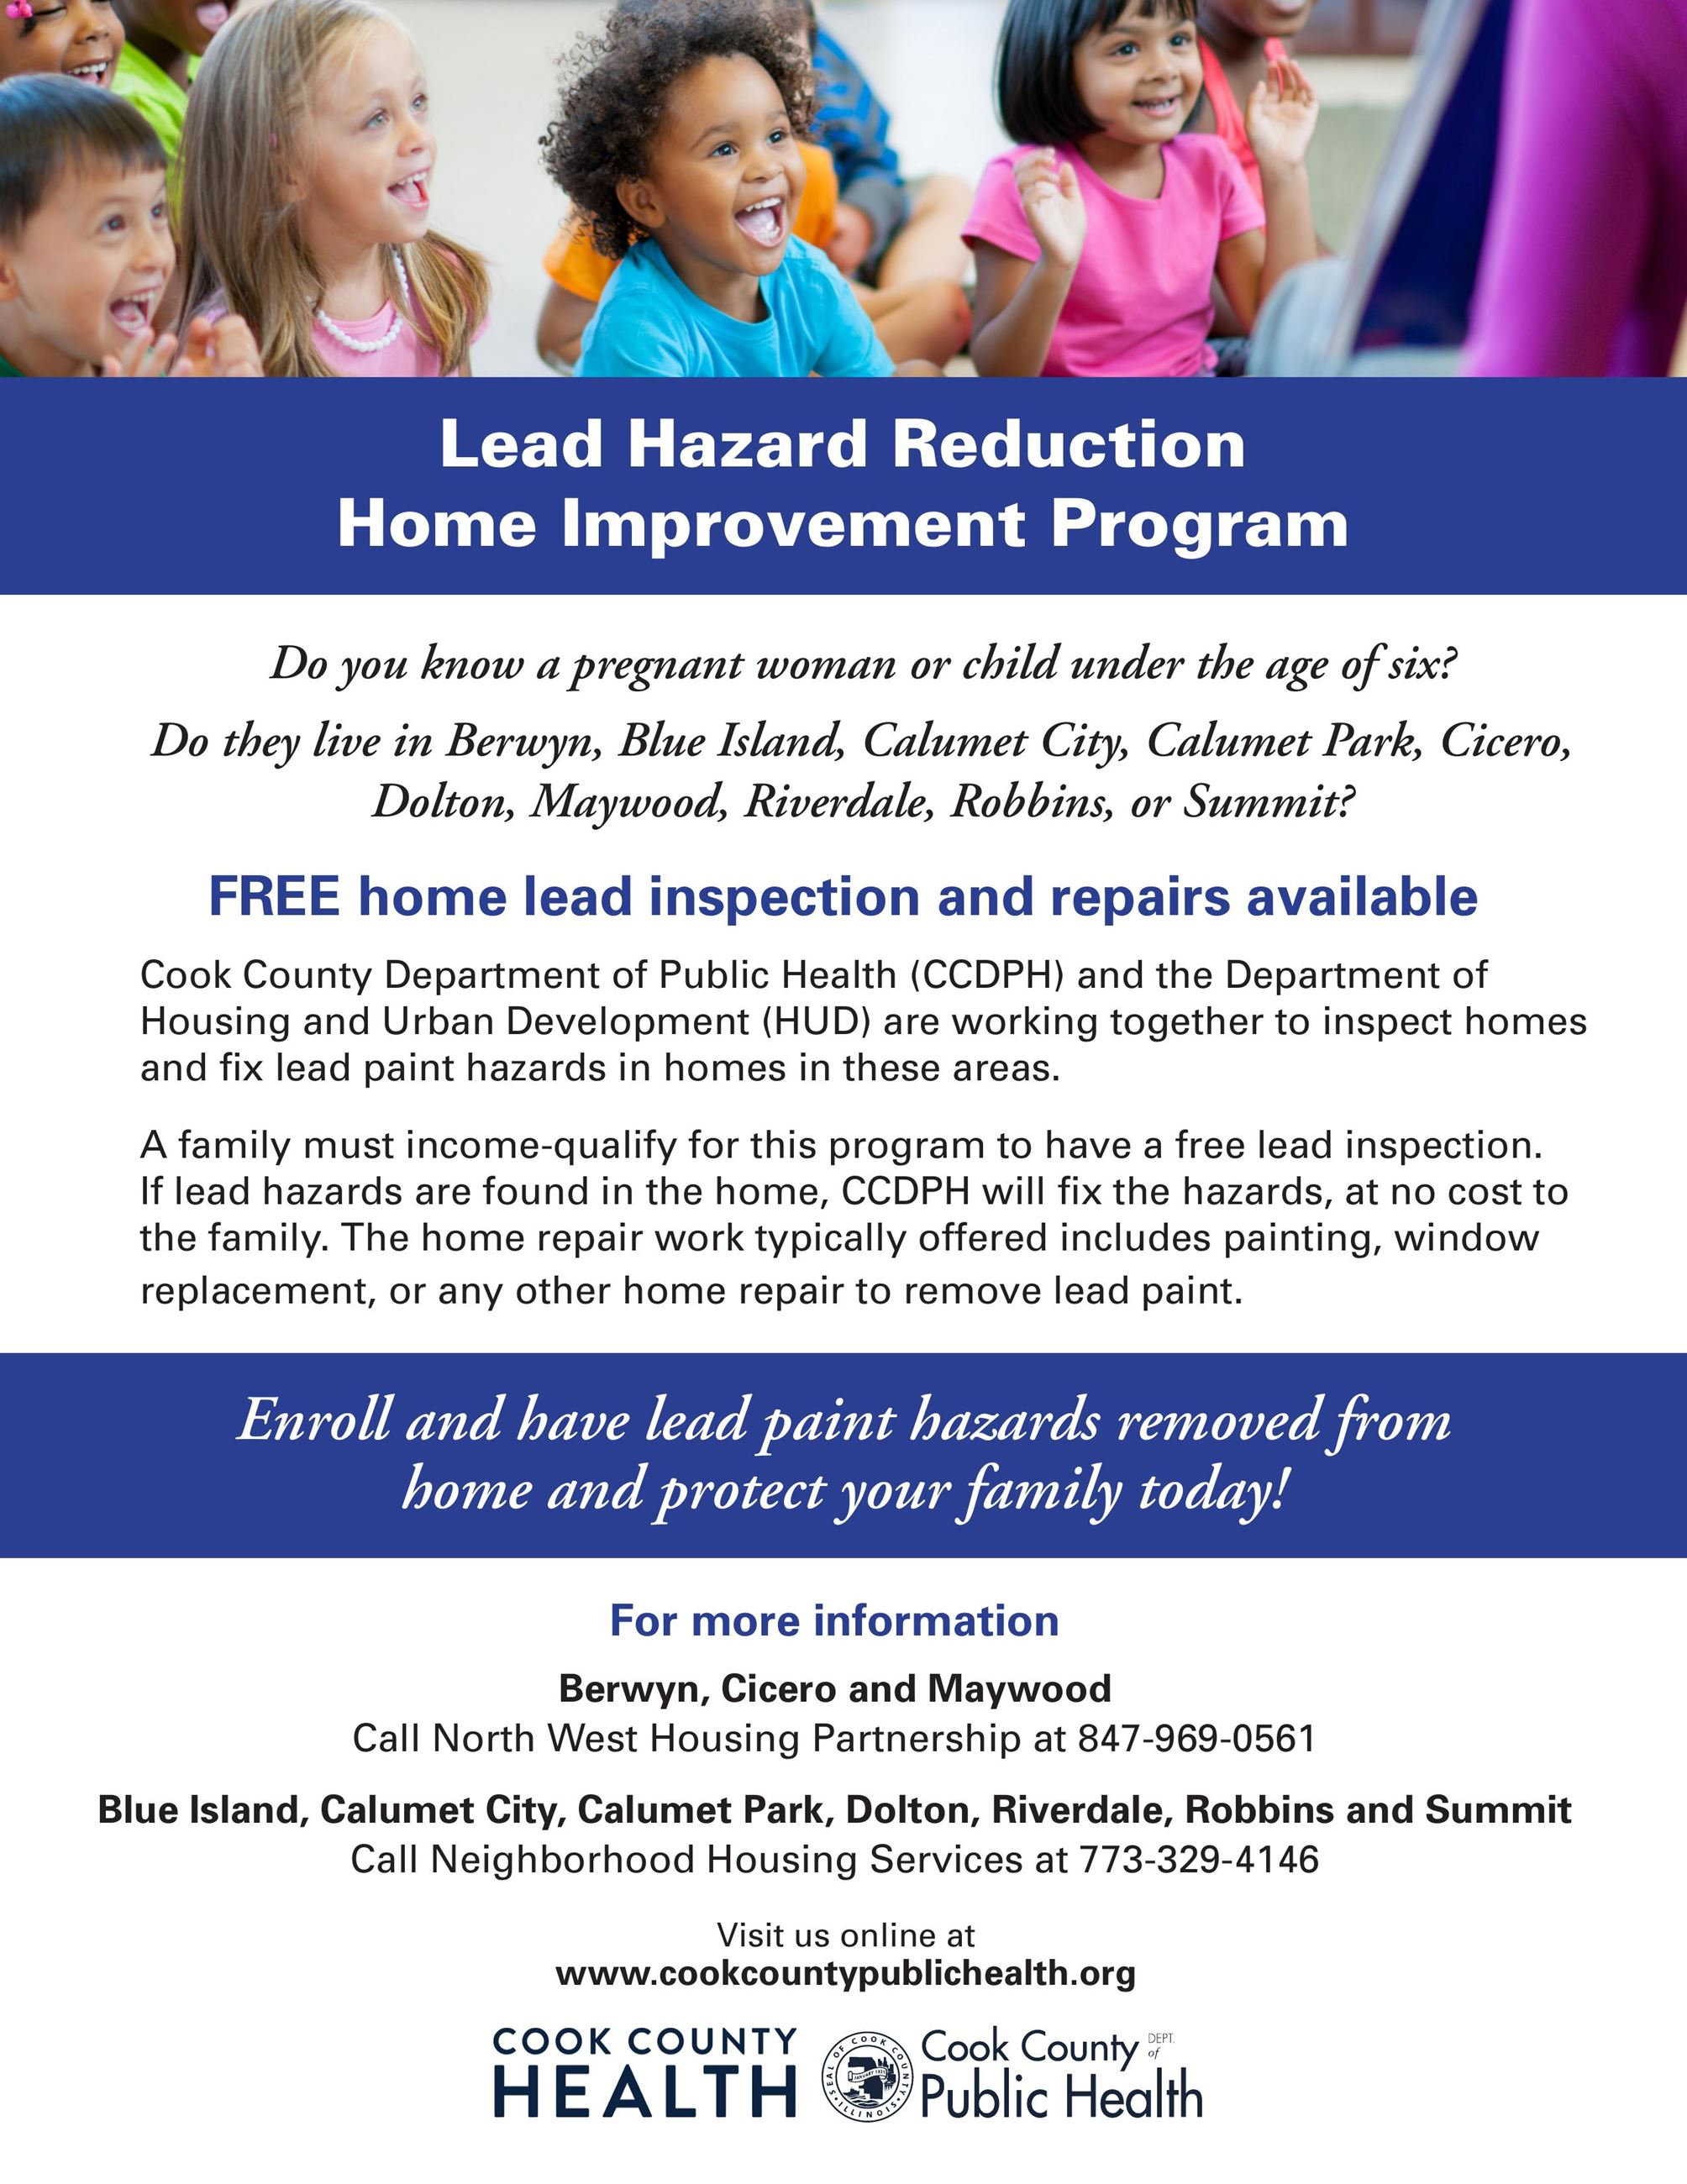 Cook County Public Health Lead Reduction Flyer